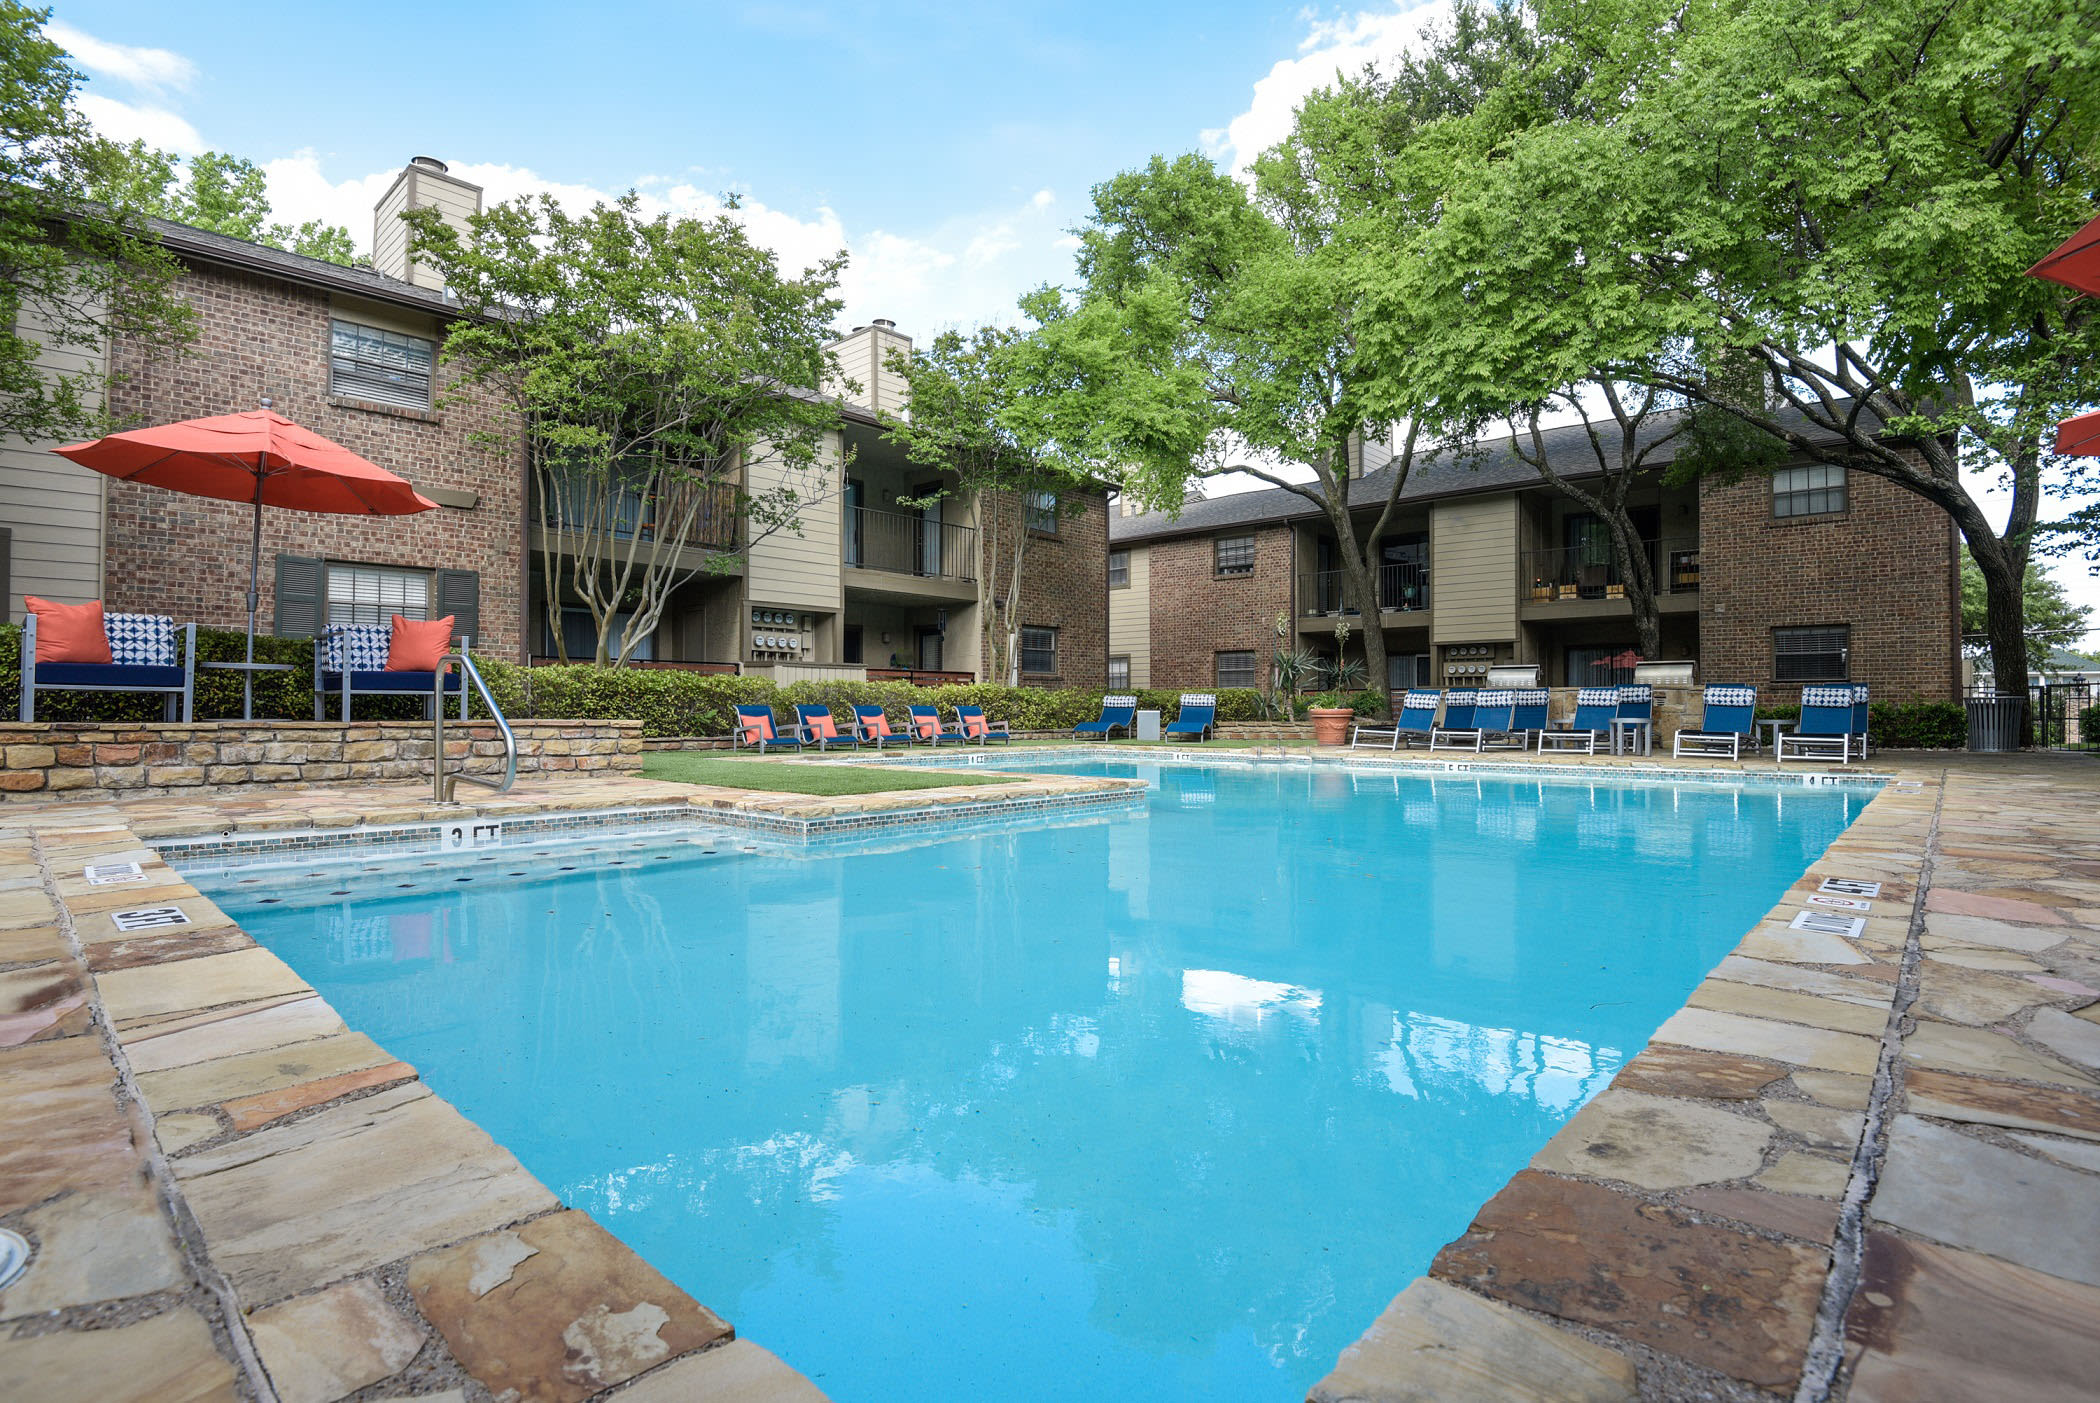 Pool at The Regent in Dallas, Texas